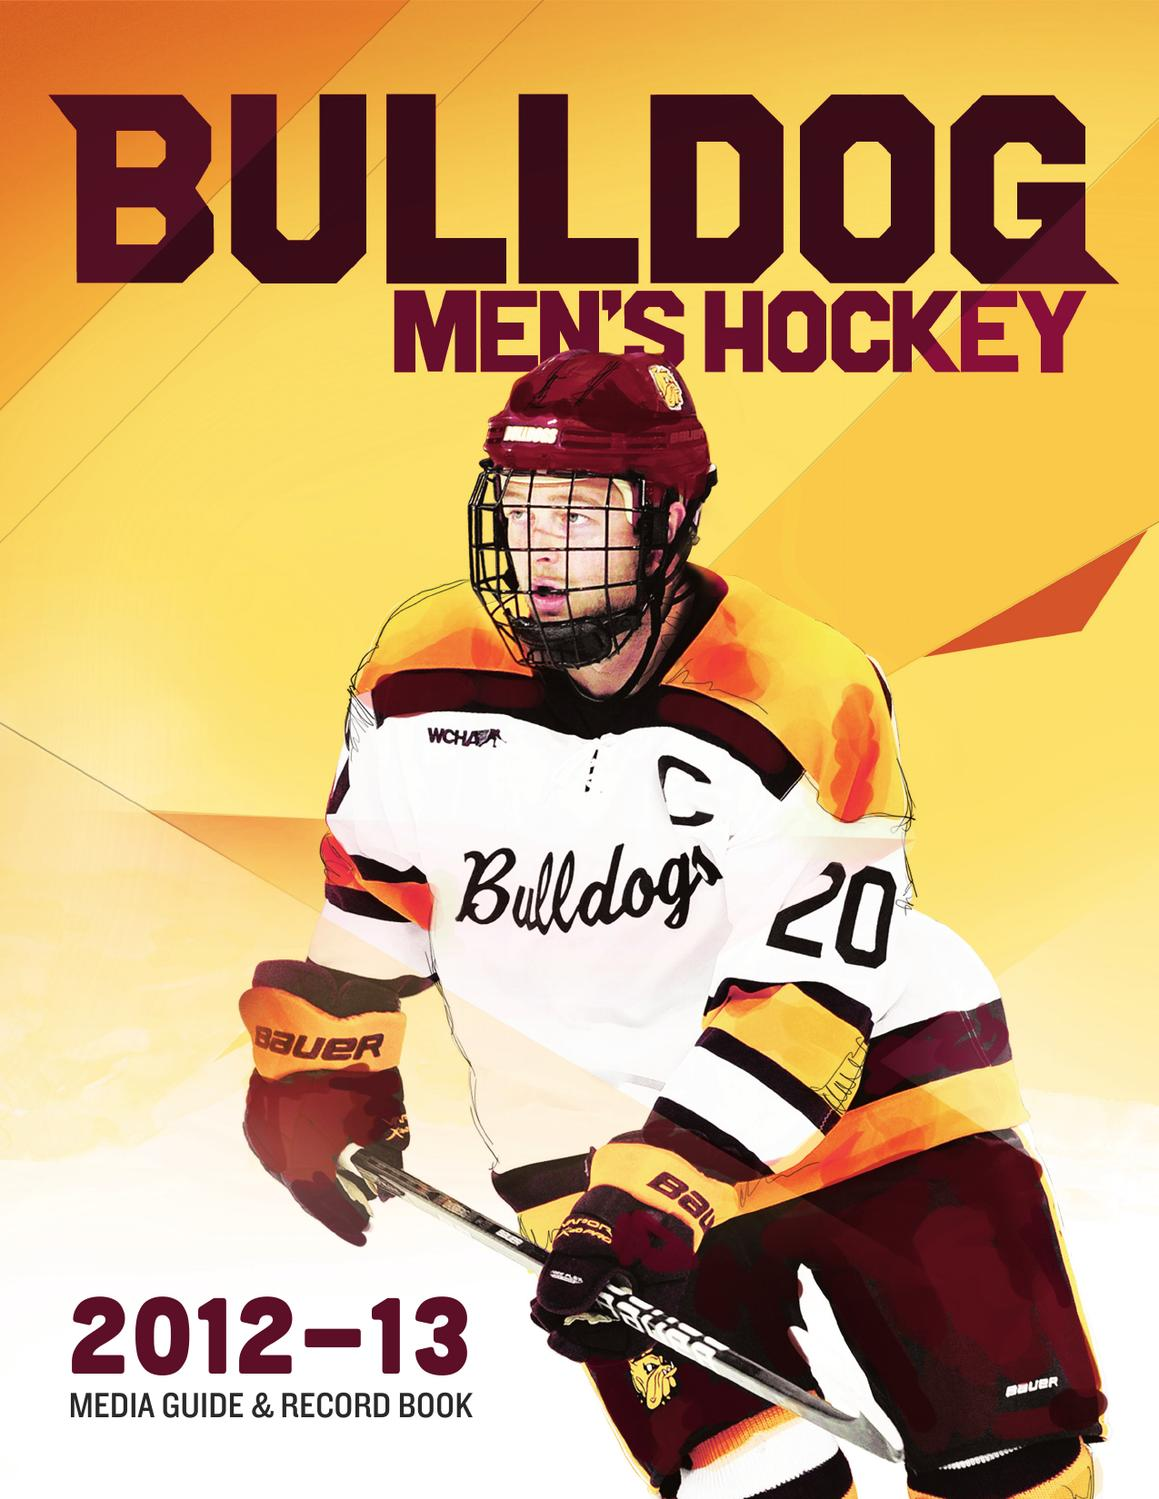 umd bulldog hockey tickets page 1 jpg 7718